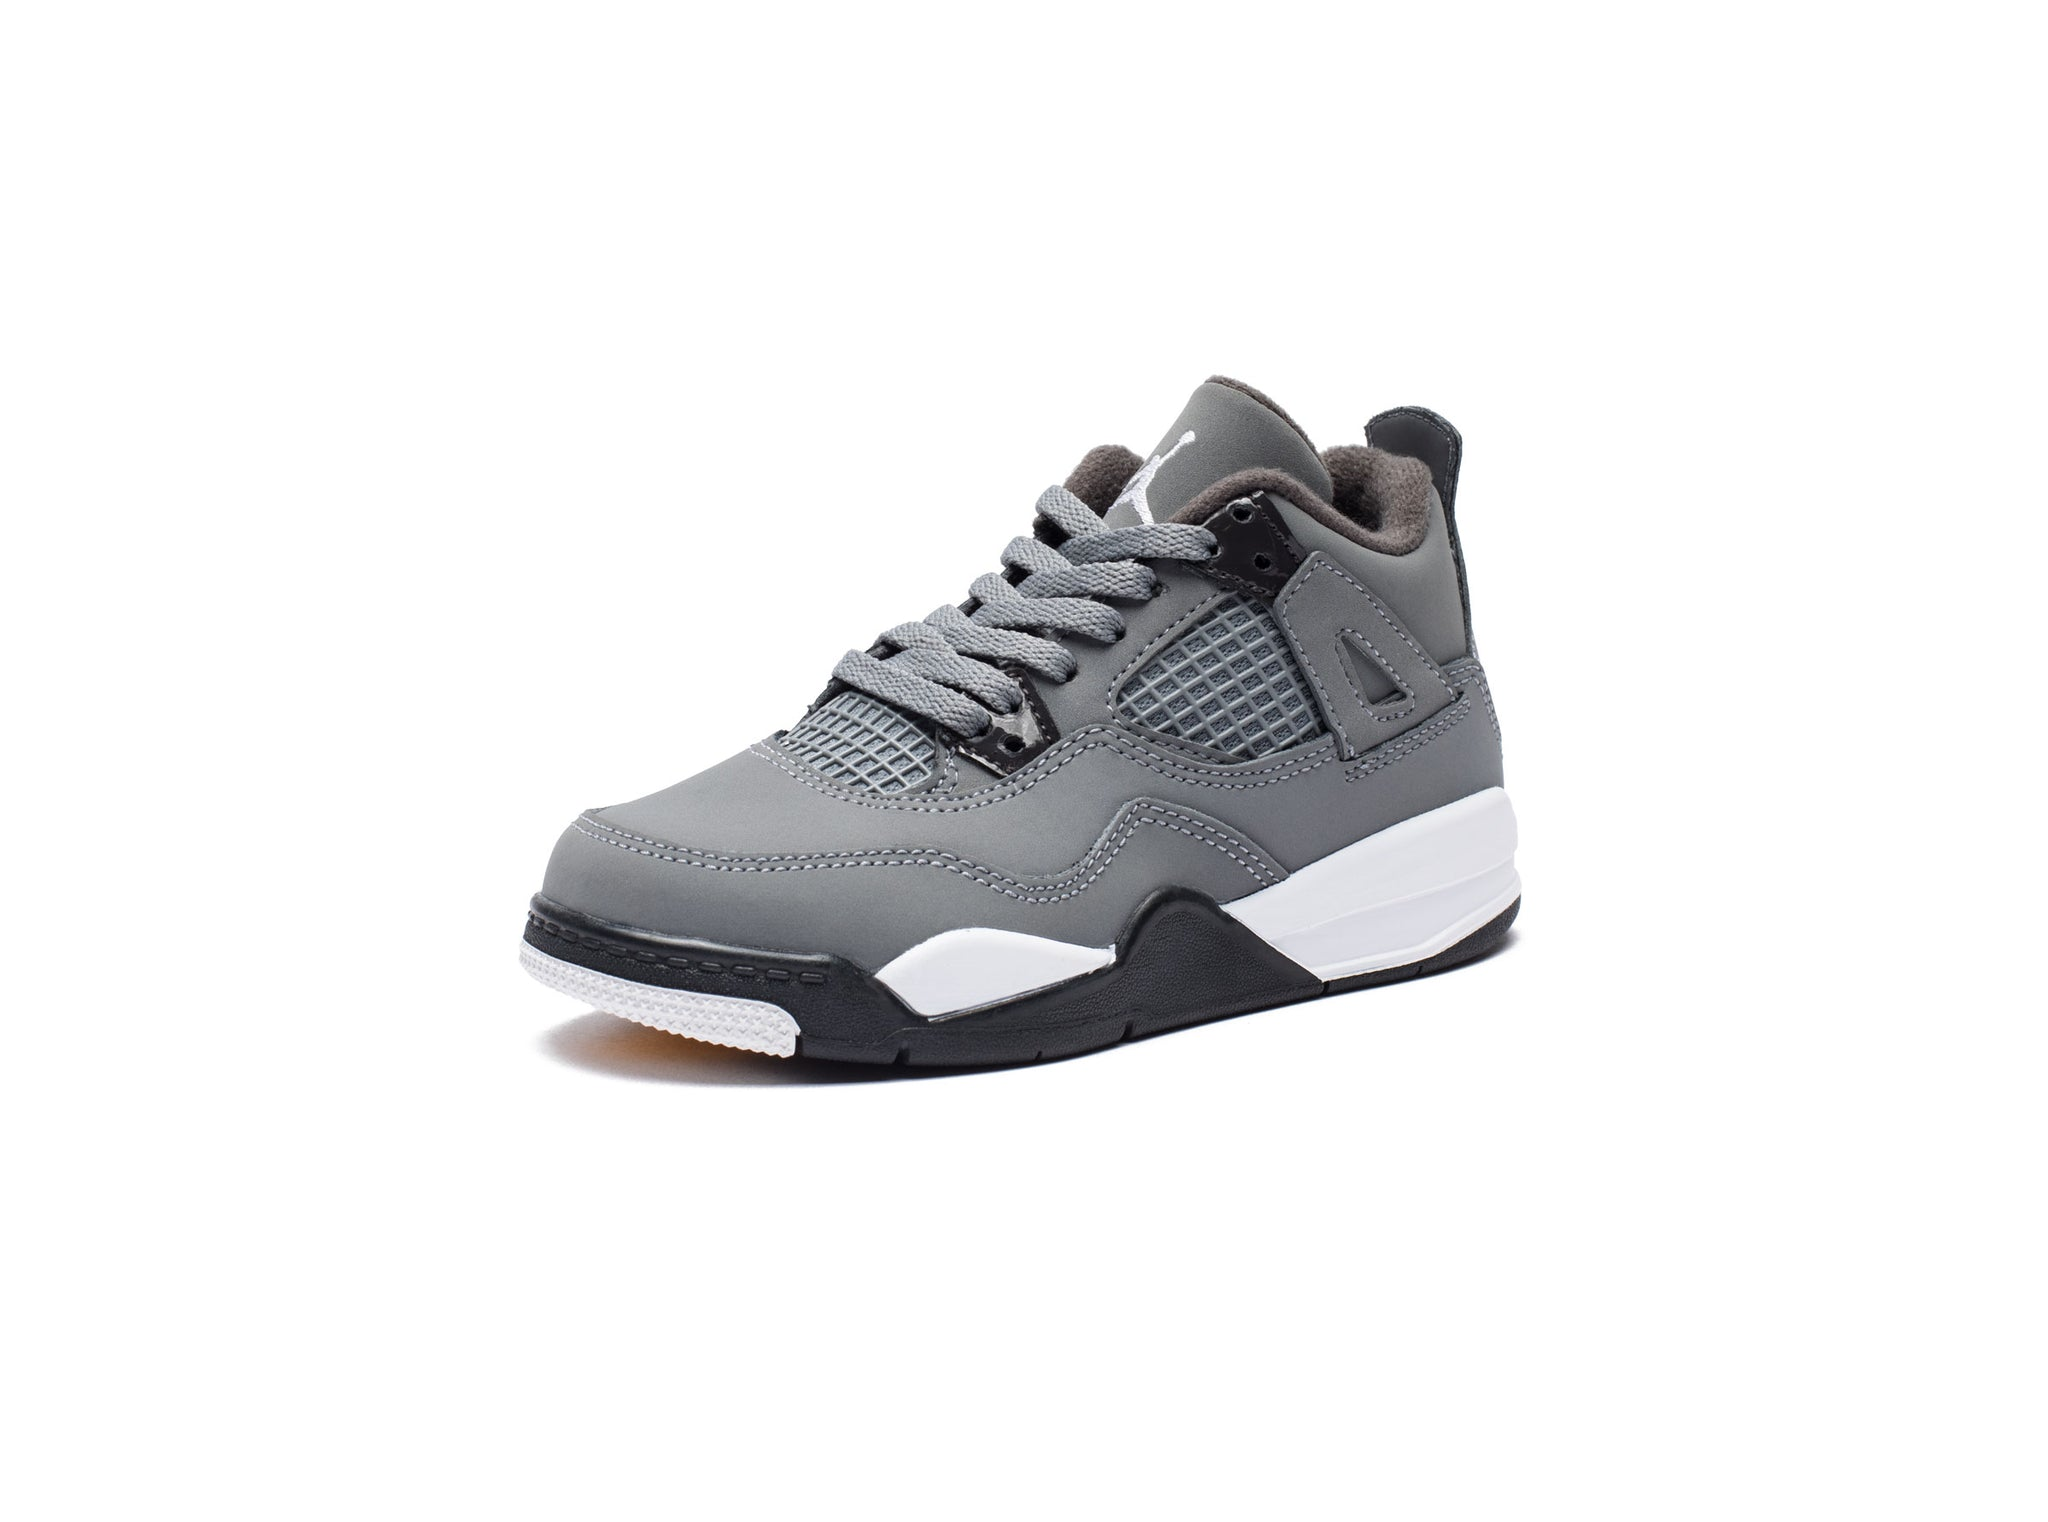 PS AJ 4 RETRO - COOLGREY/CHROME/DARKCHARCOAL